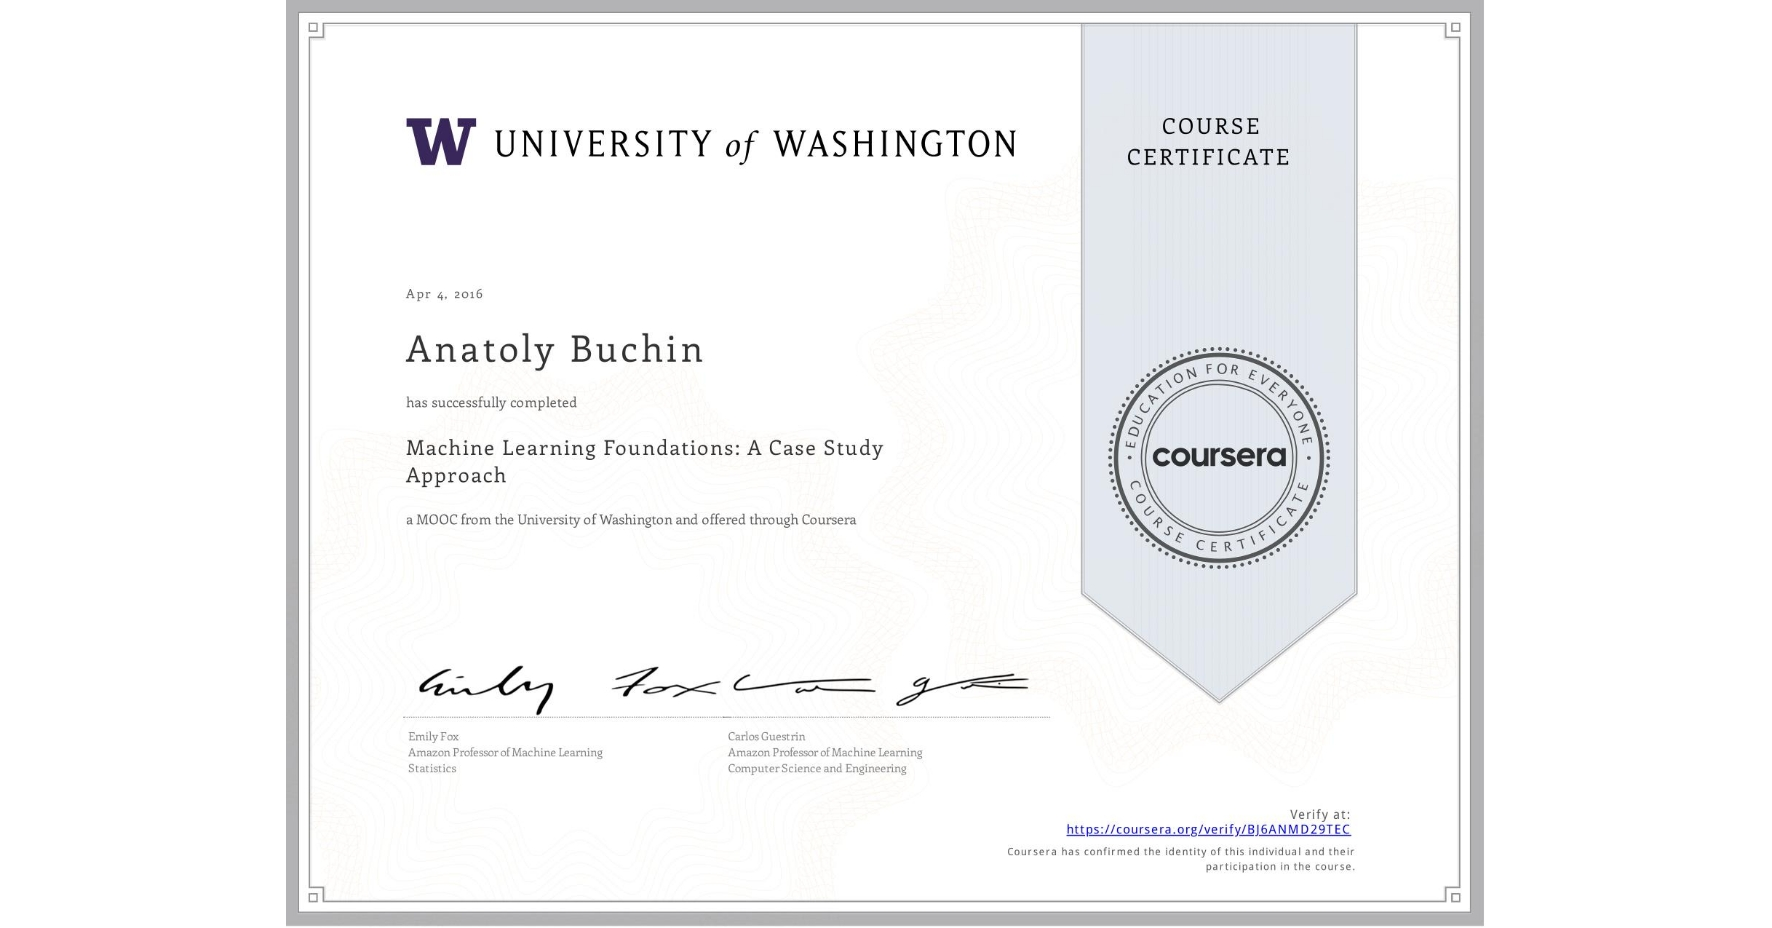 View certificate for Anatoly Buchin, Machine Learning Foundations: A Case Study Approach, an online non-credit course authorized by University of Washington and offered through Coursera